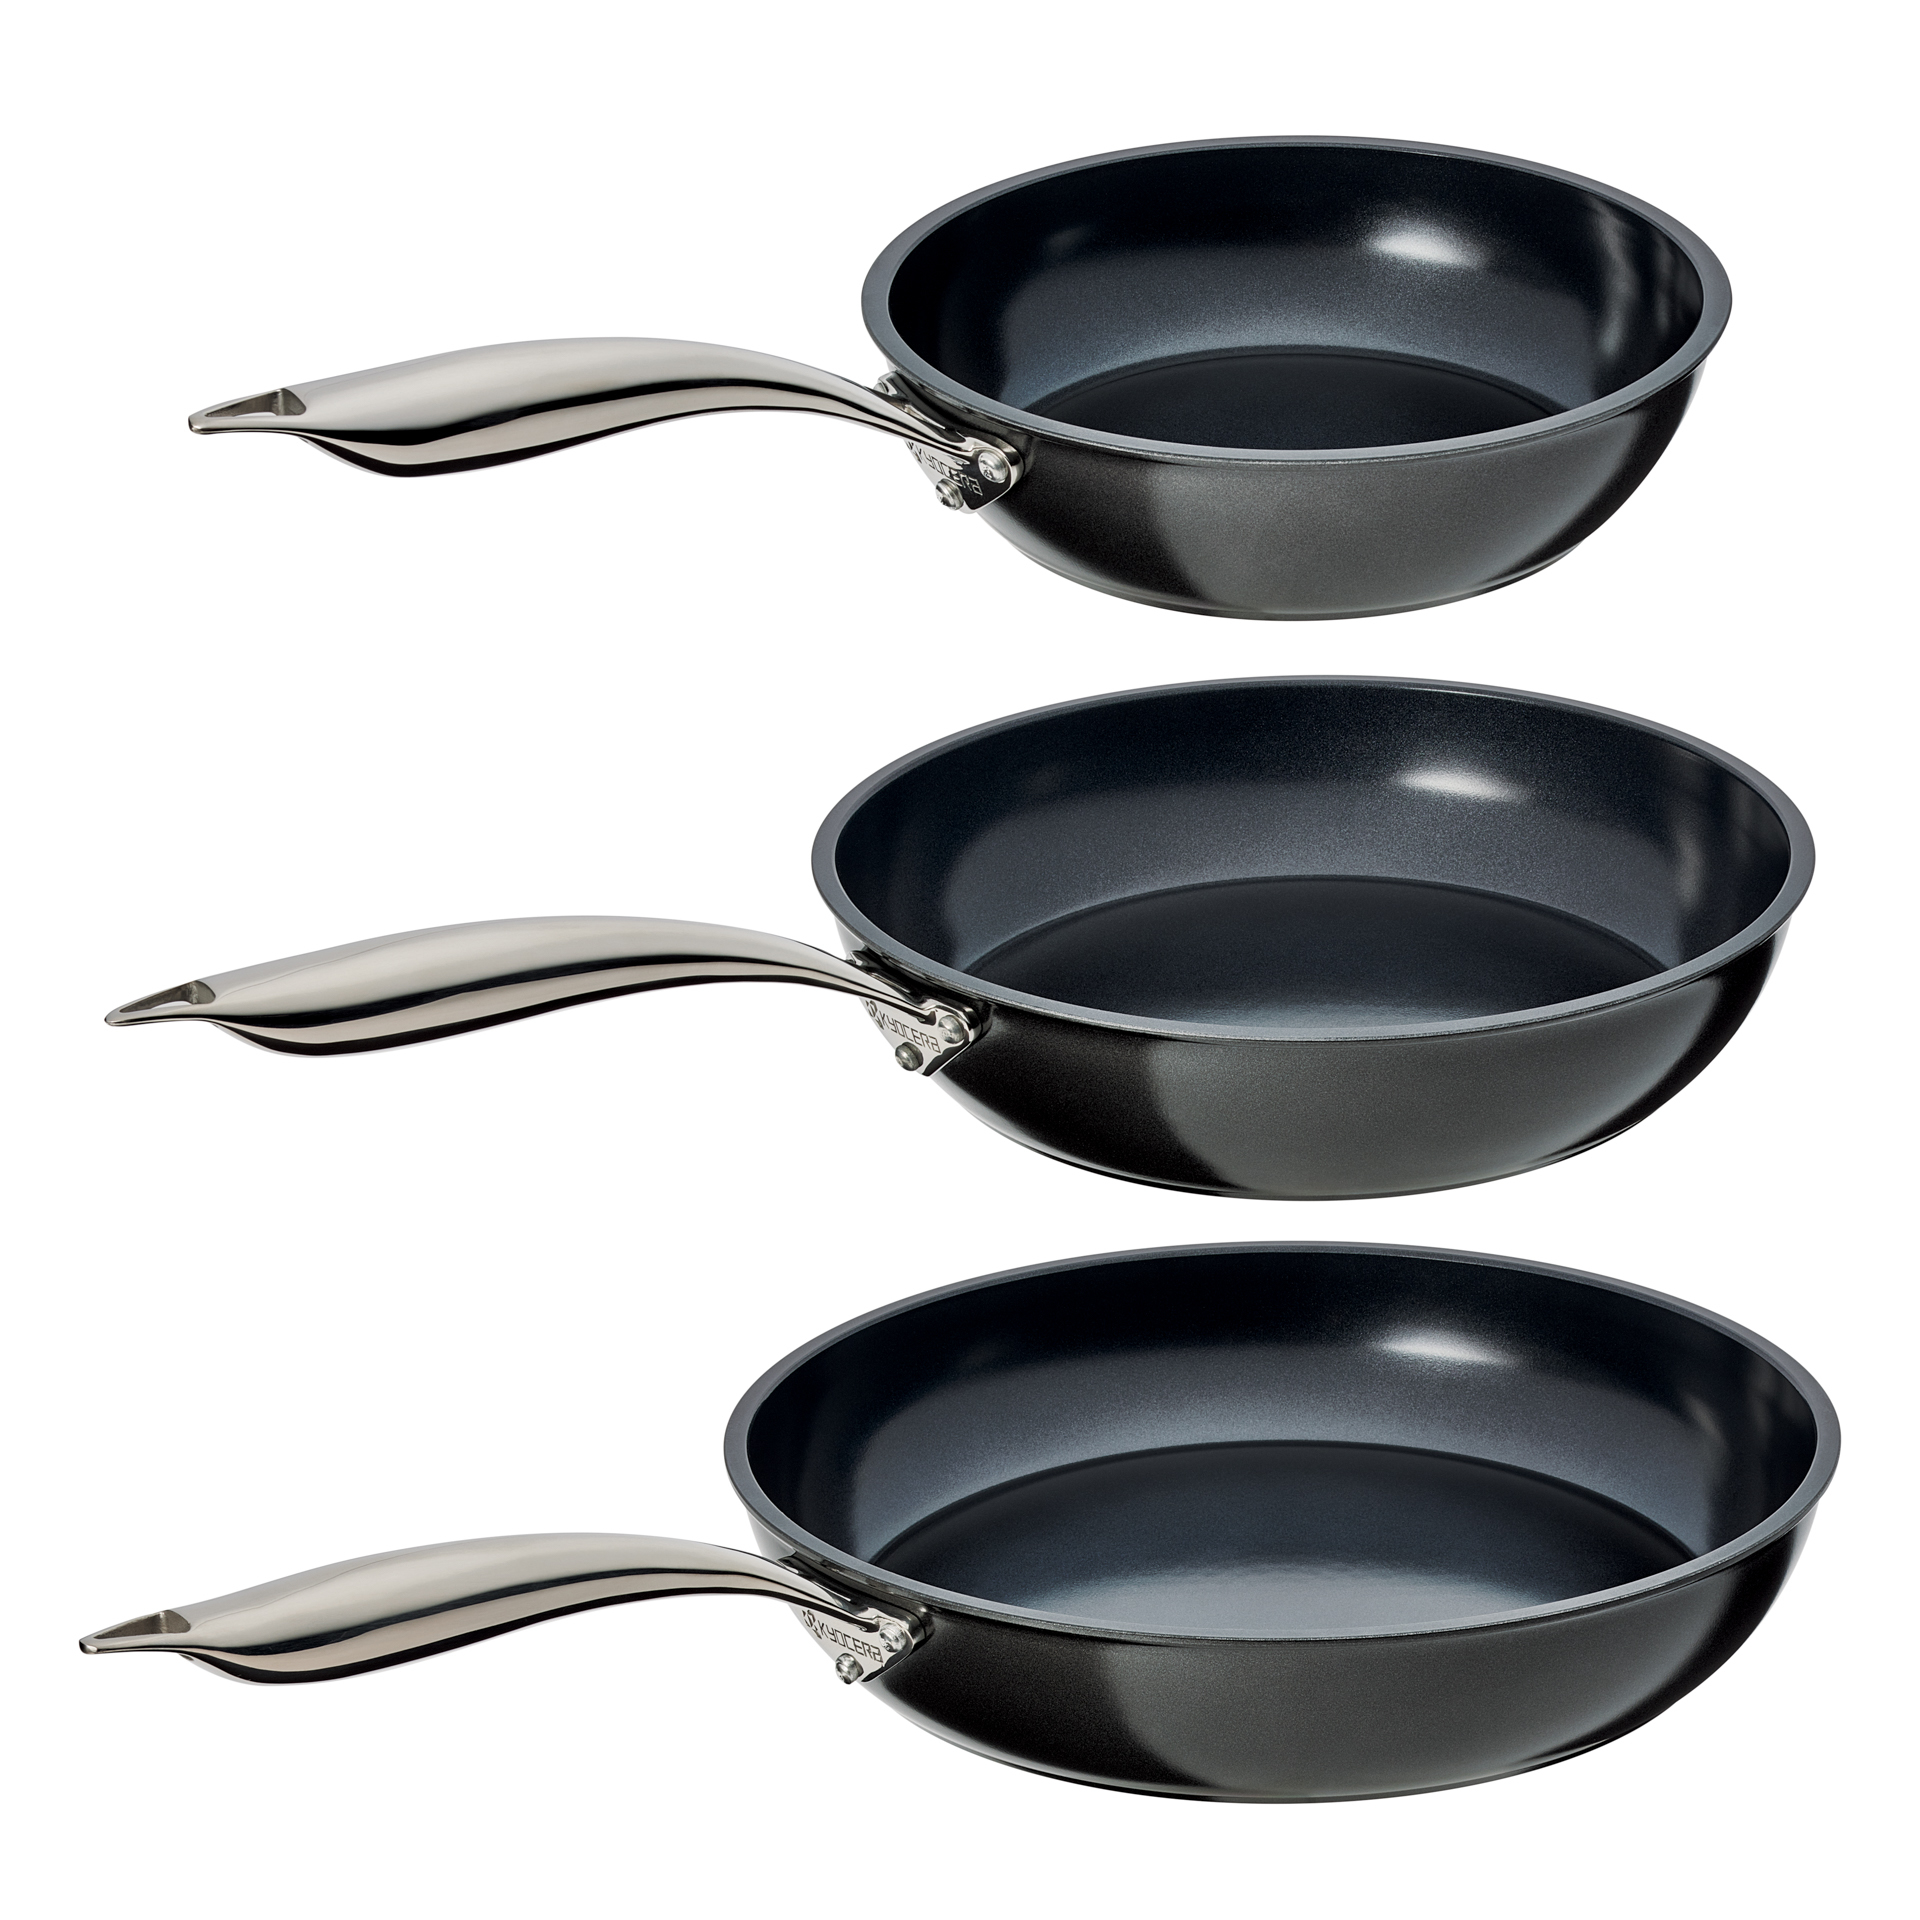 "Picture of 8"", 10"" and 12"" Ceramic Nonstick Fry Pans 3 Piece Set"